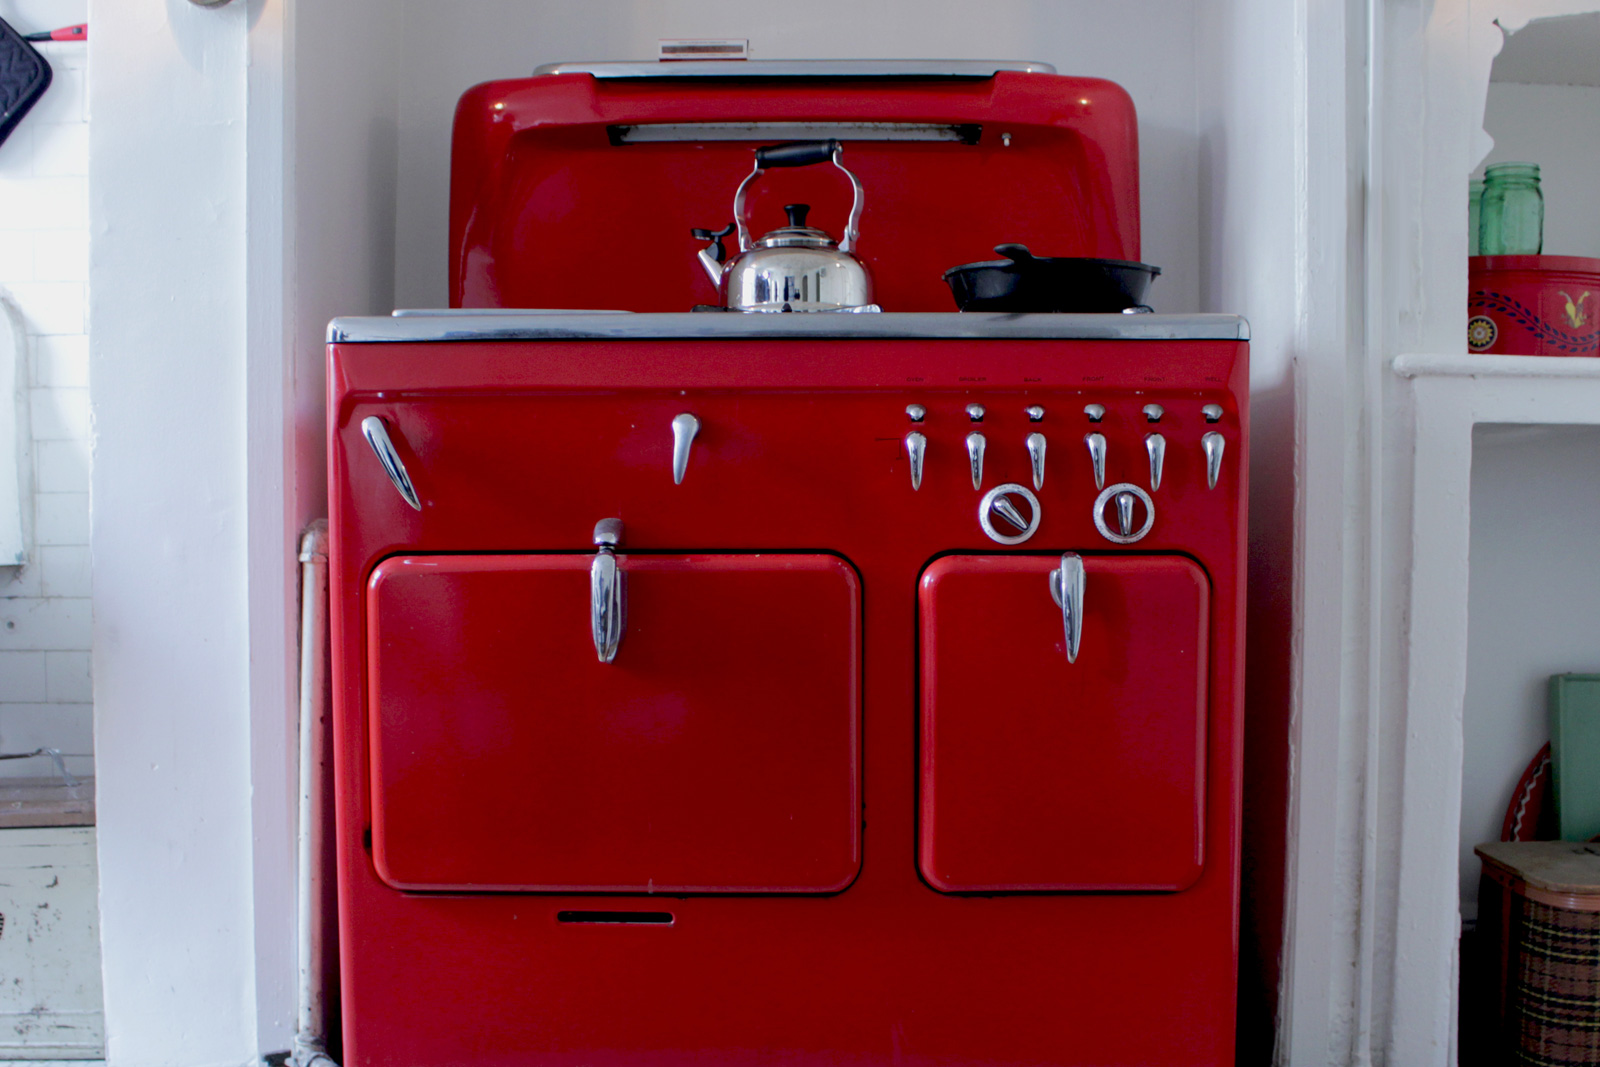 Best floors for a kitchen - Red Vintage Stove In A Home Kitchen